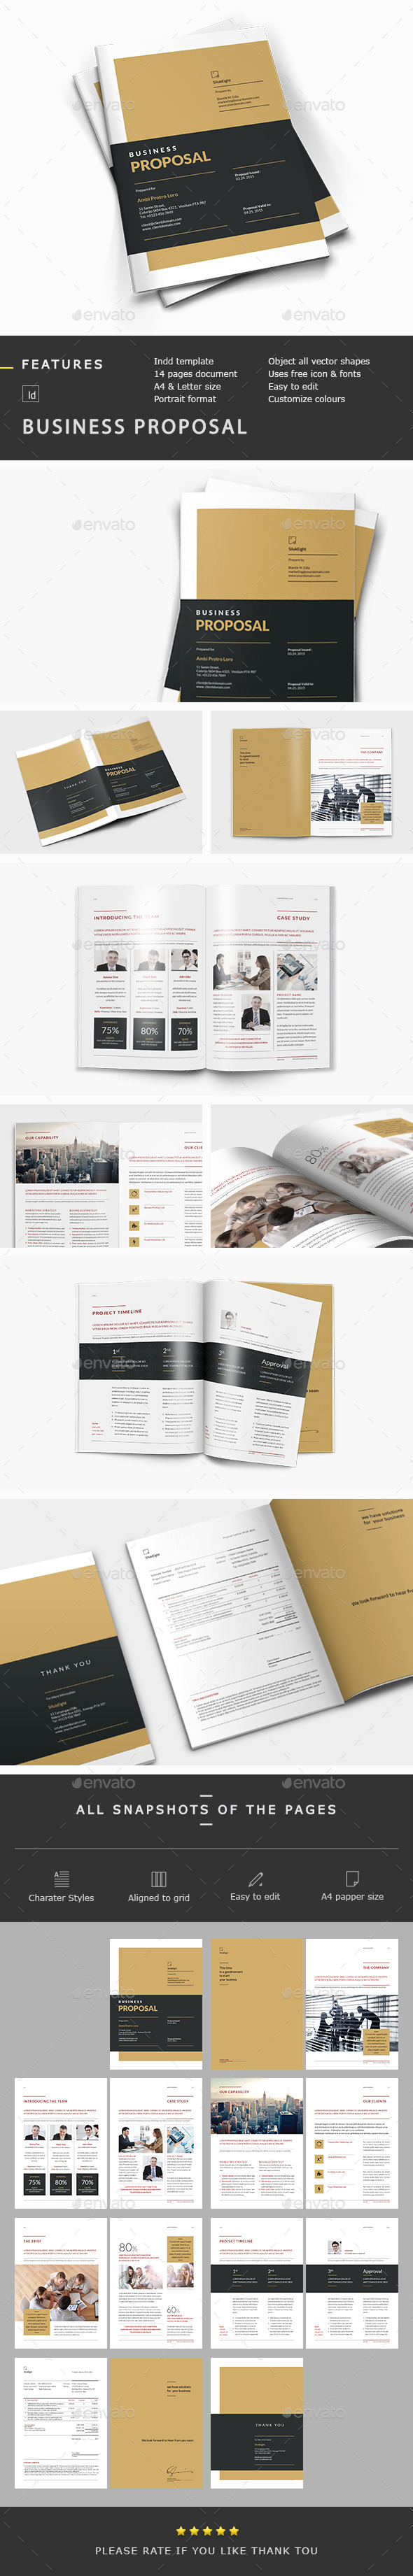 GraphicRiver SilukEight Business Proposal 10682060